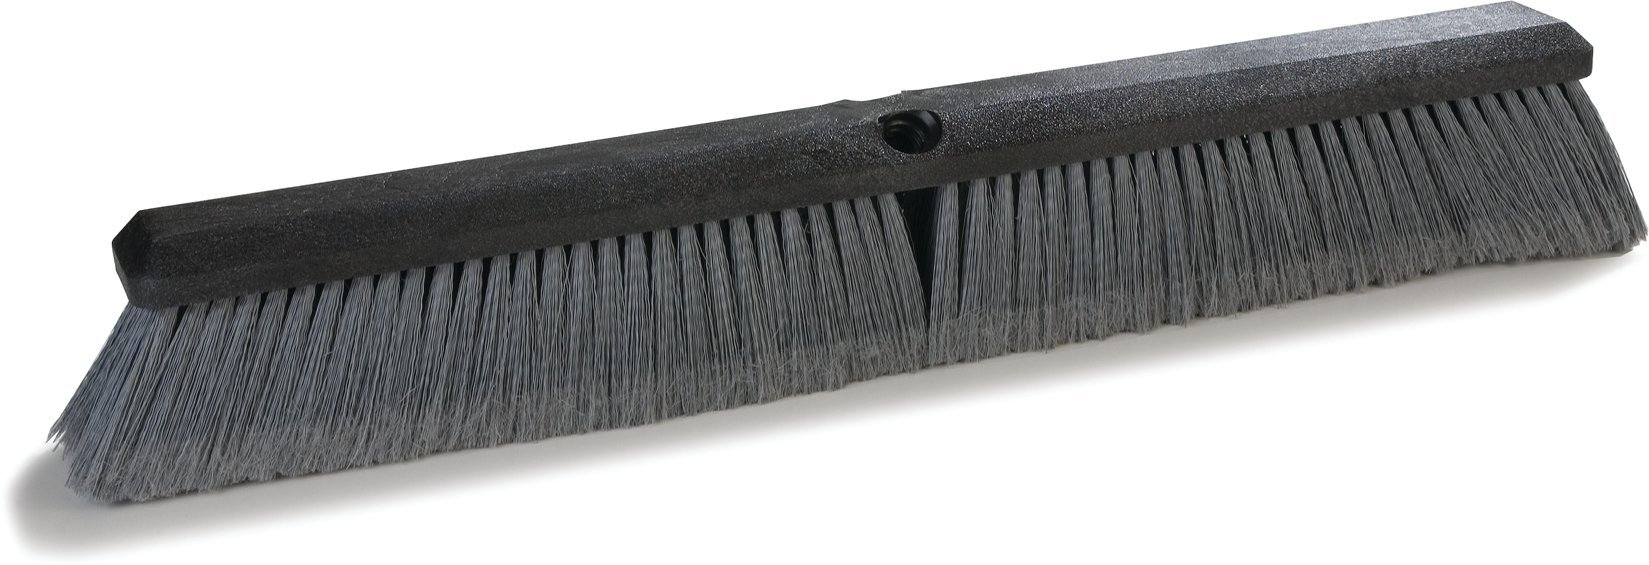 Carlisle 3620481823 Flo-Pac Plastic Block Flagged Floor Sweep, Polypropylene Bristles, 3'' Trim x 2-1/2'' Width Bristles, 18'' Length, Gray (Pack of 12)